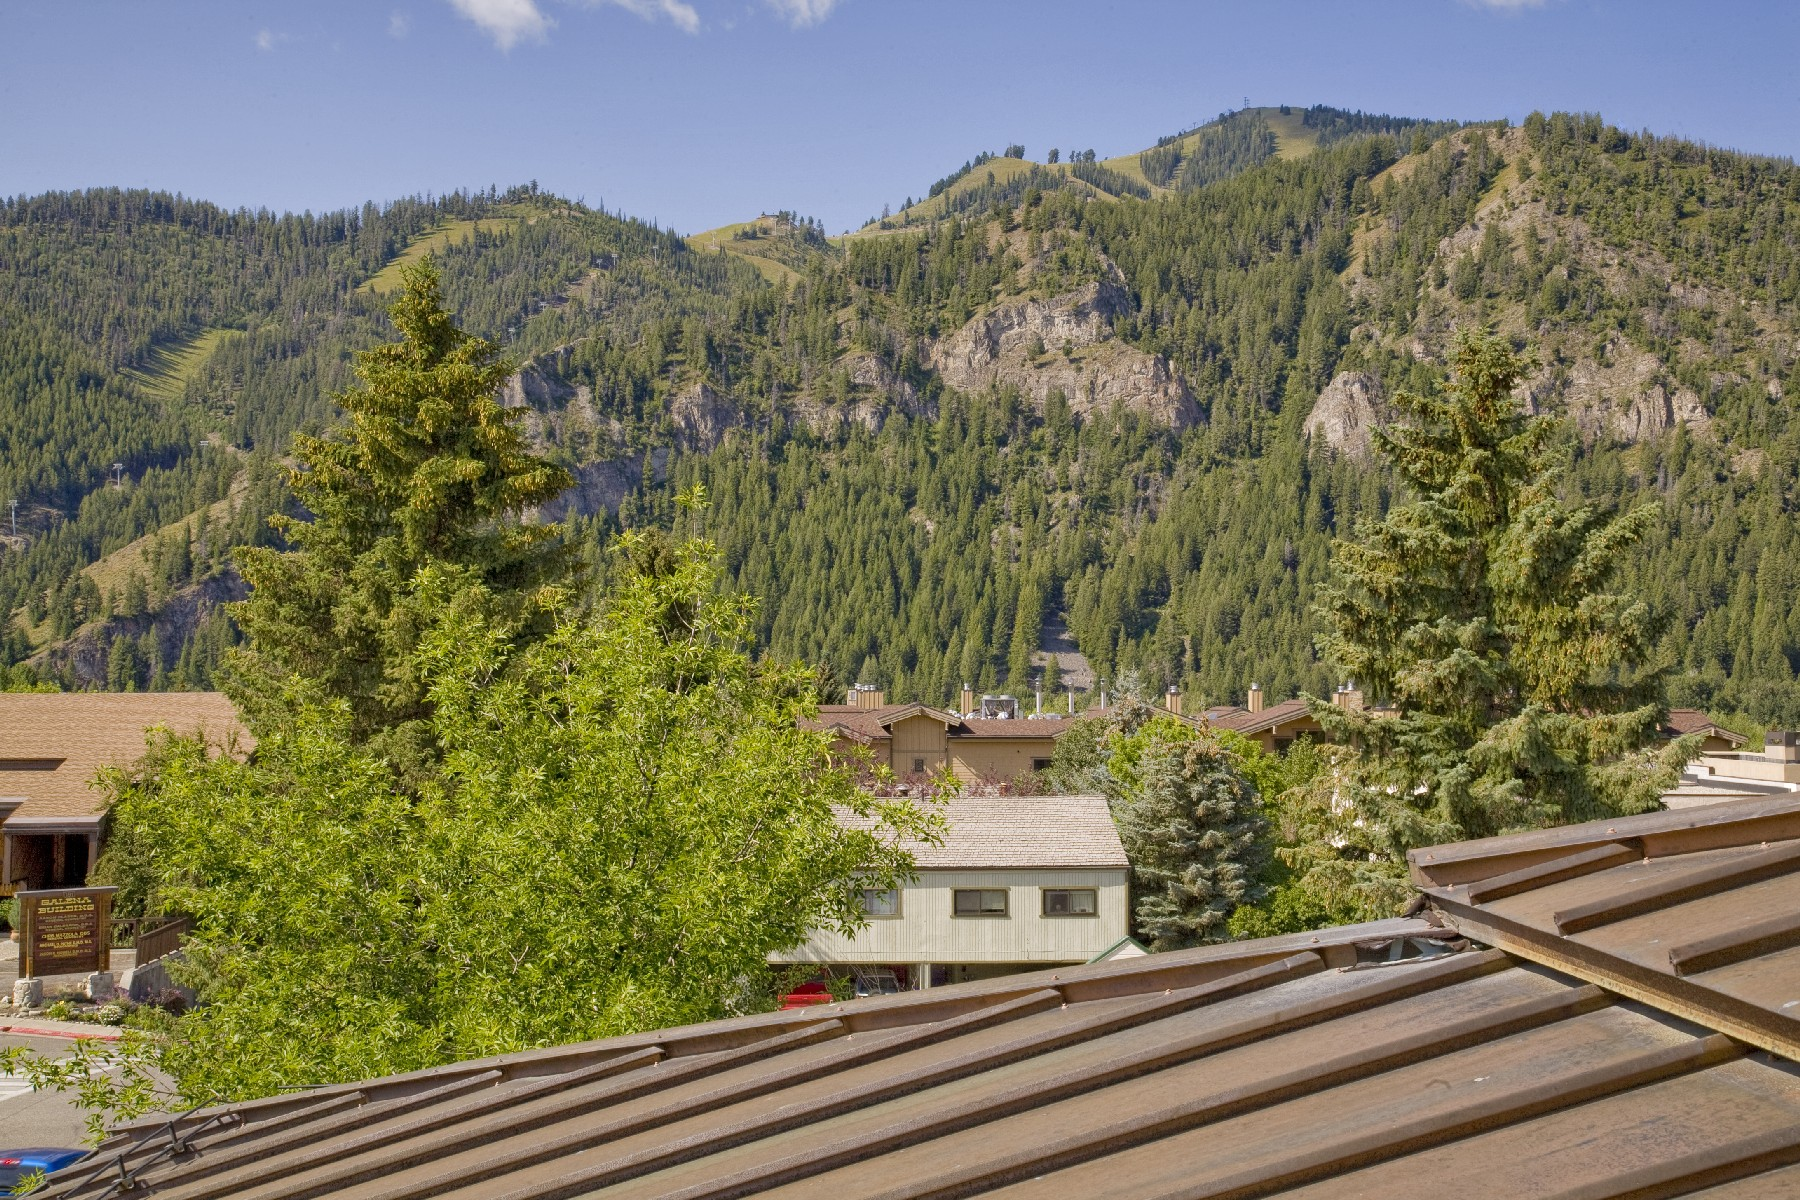 Additional photo for property listing at Baldy View Penthouse 271 N Washington Ave Unit 3 Ketchum, Idaho 83340 Estados Unidos